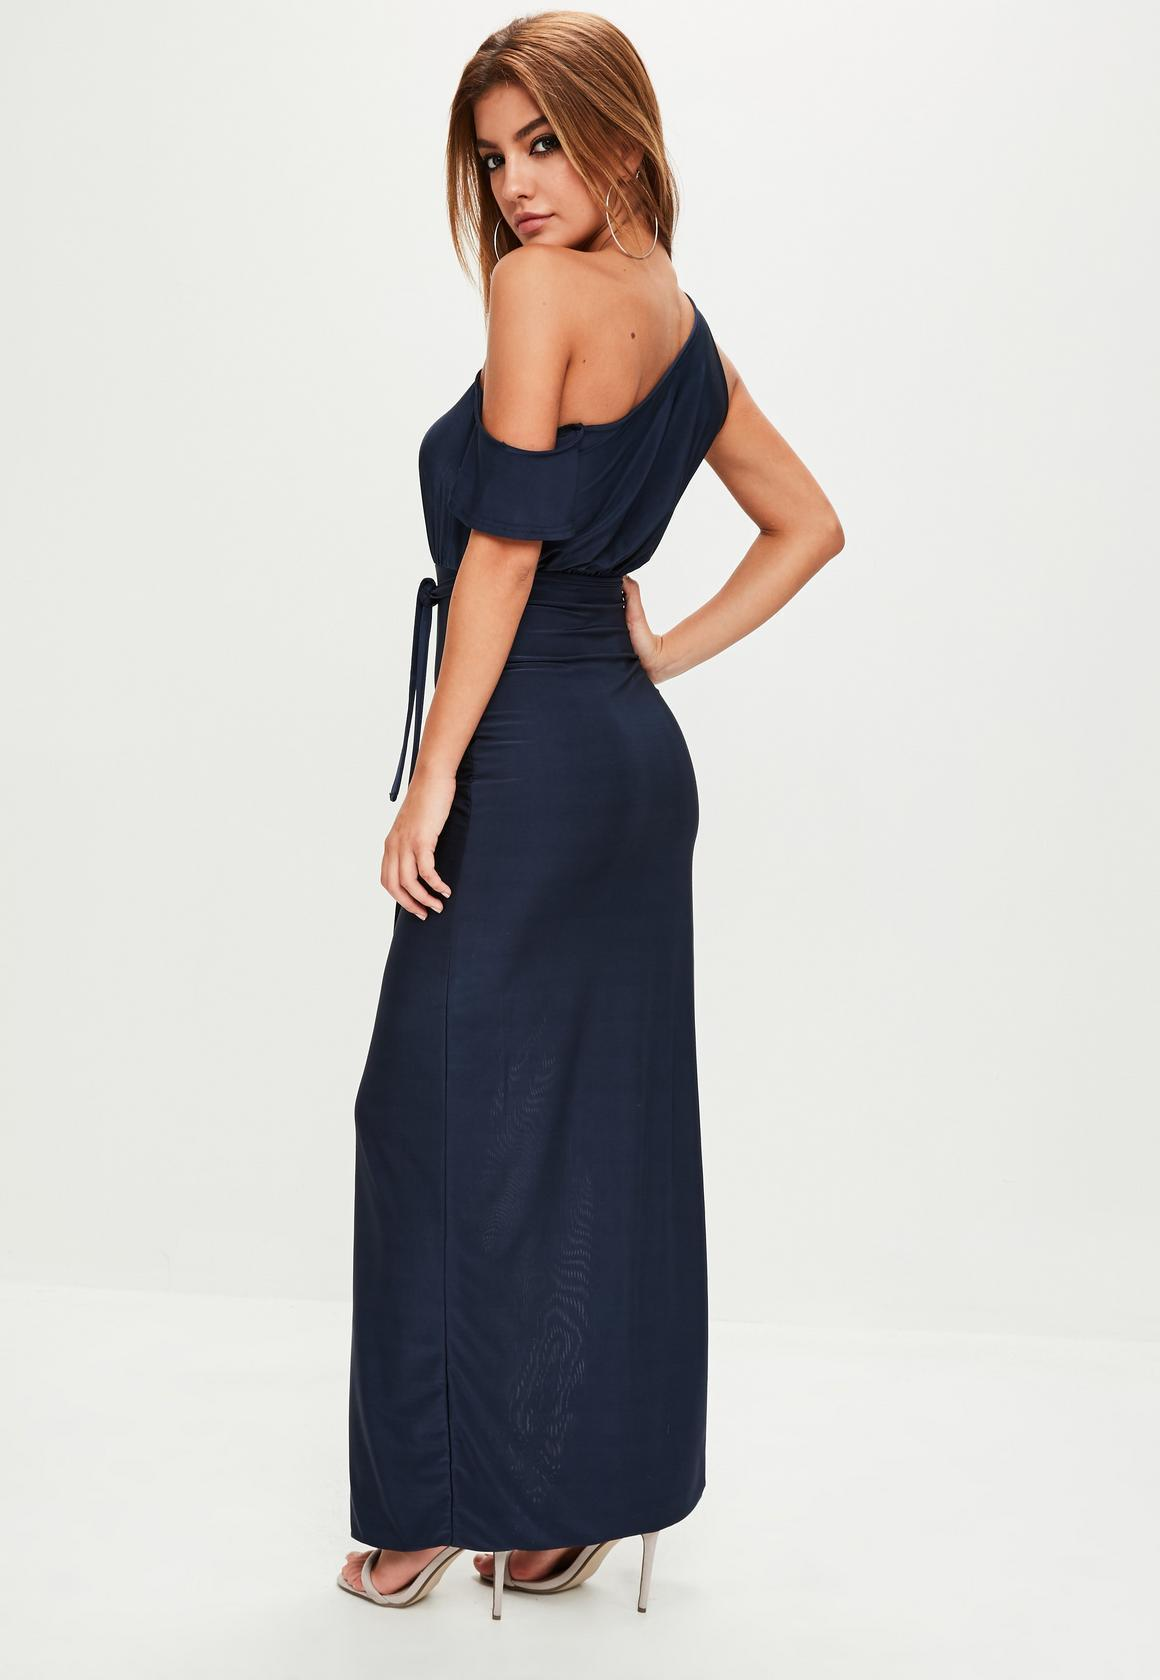 【海外限定】Missguidedマキシドレス☆Navy Slinky One Shoulder